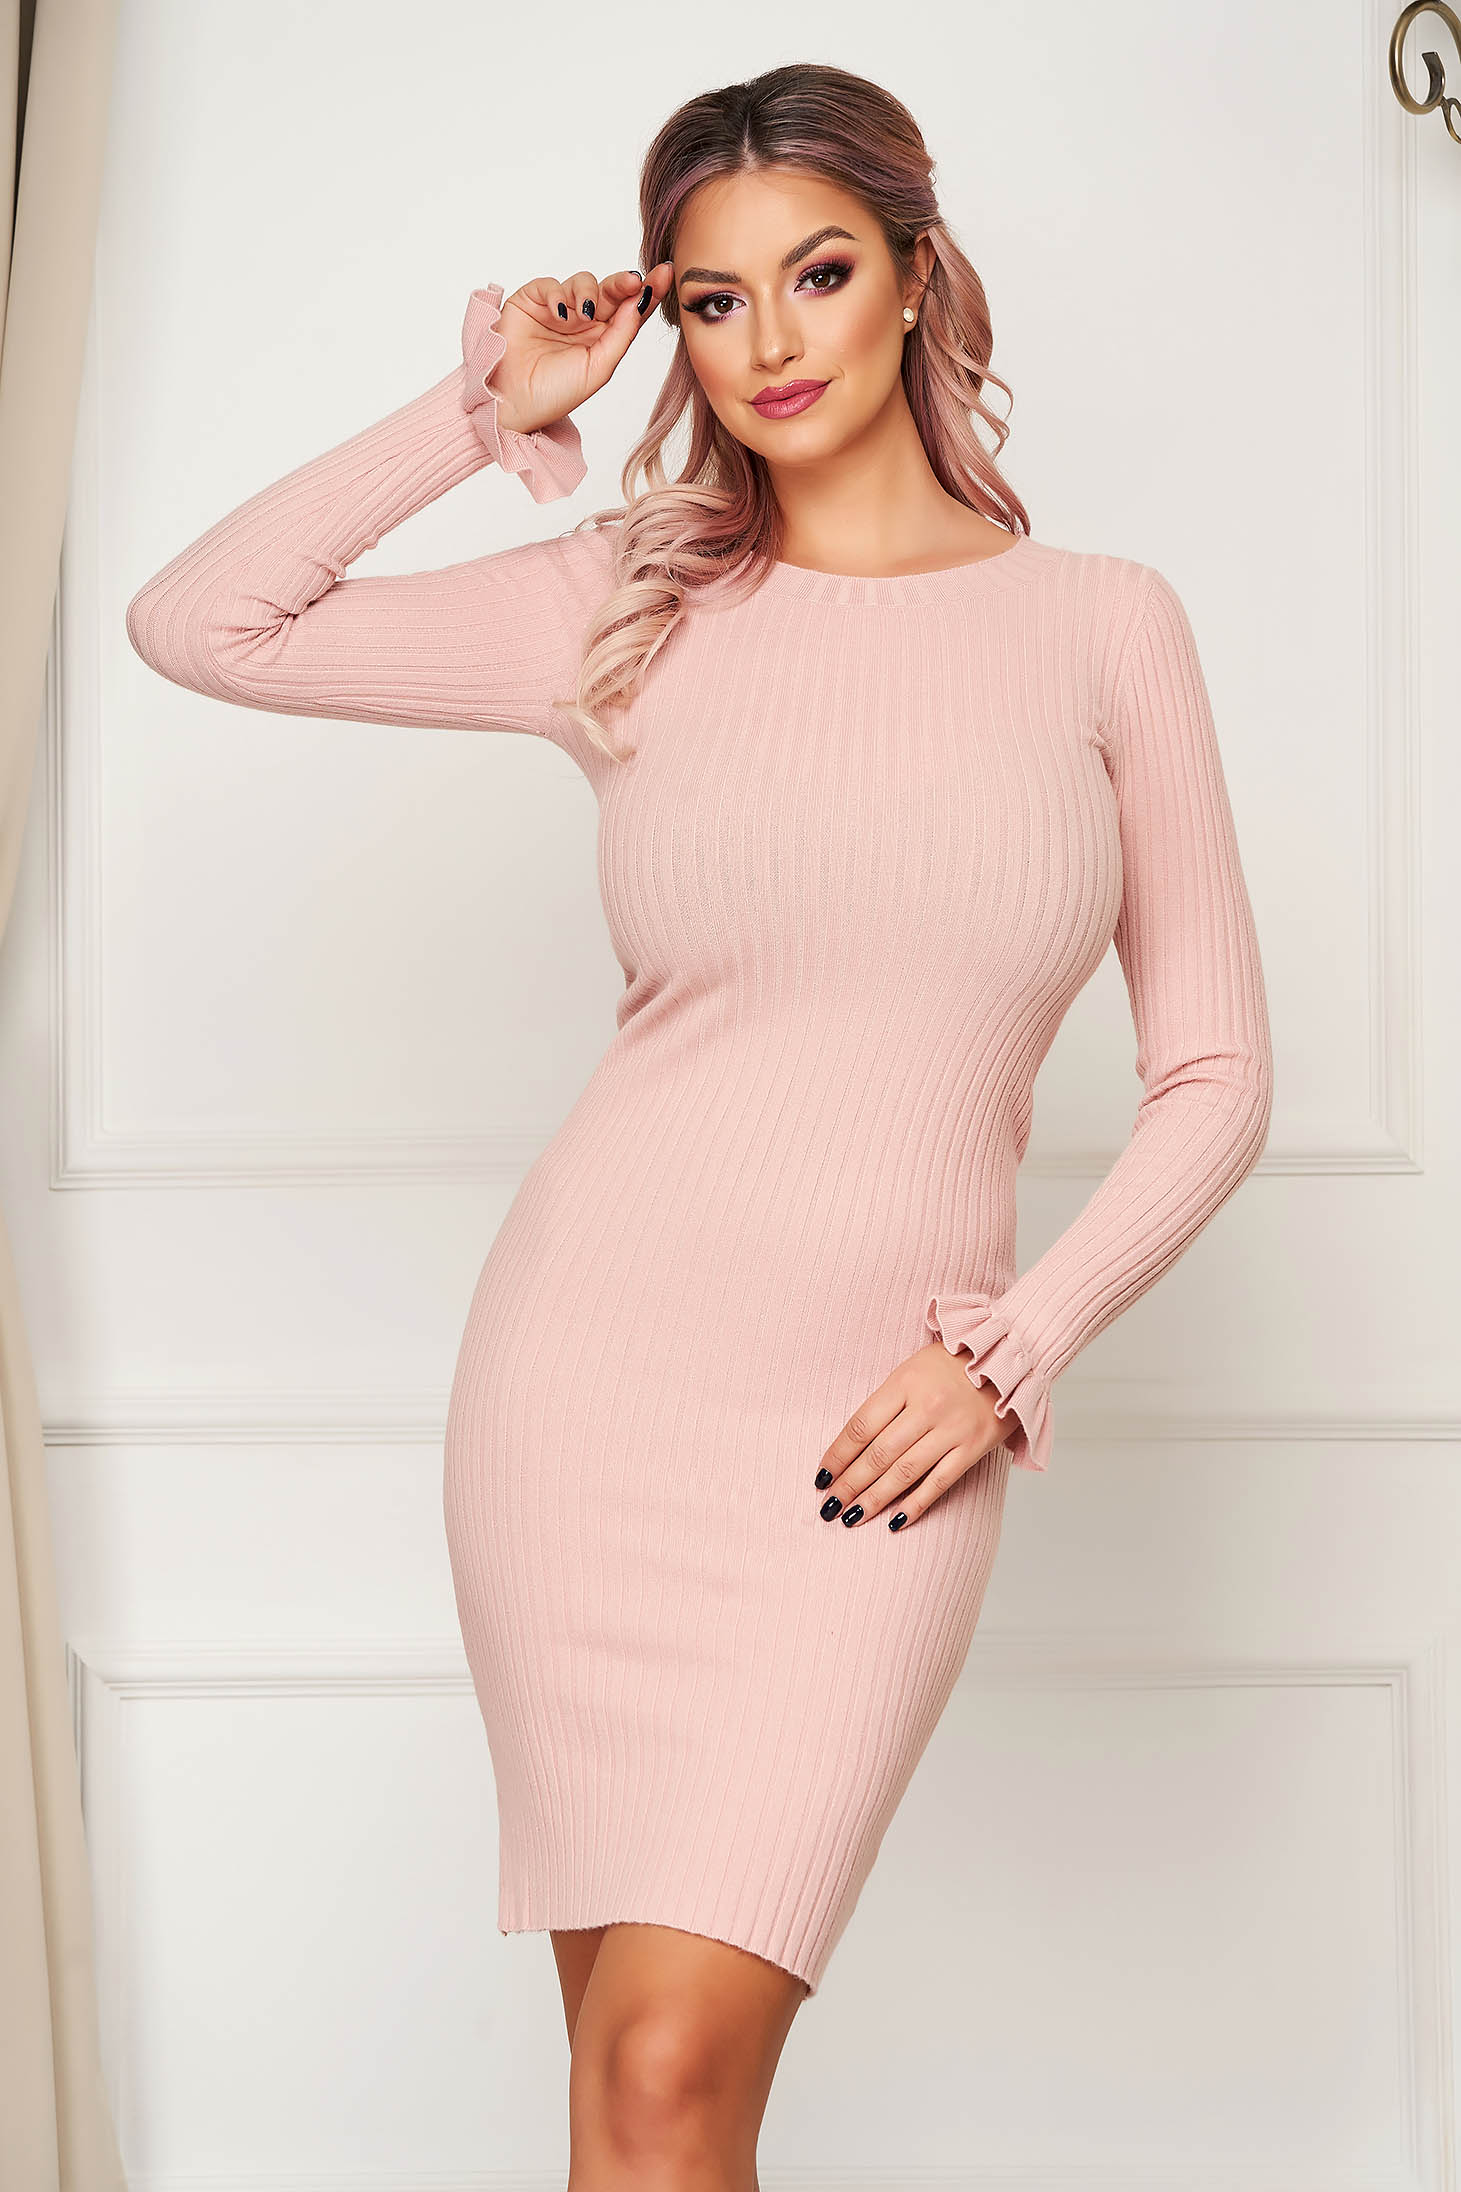 Pink dress short cut daily pencil knitted with ruffled sleeves